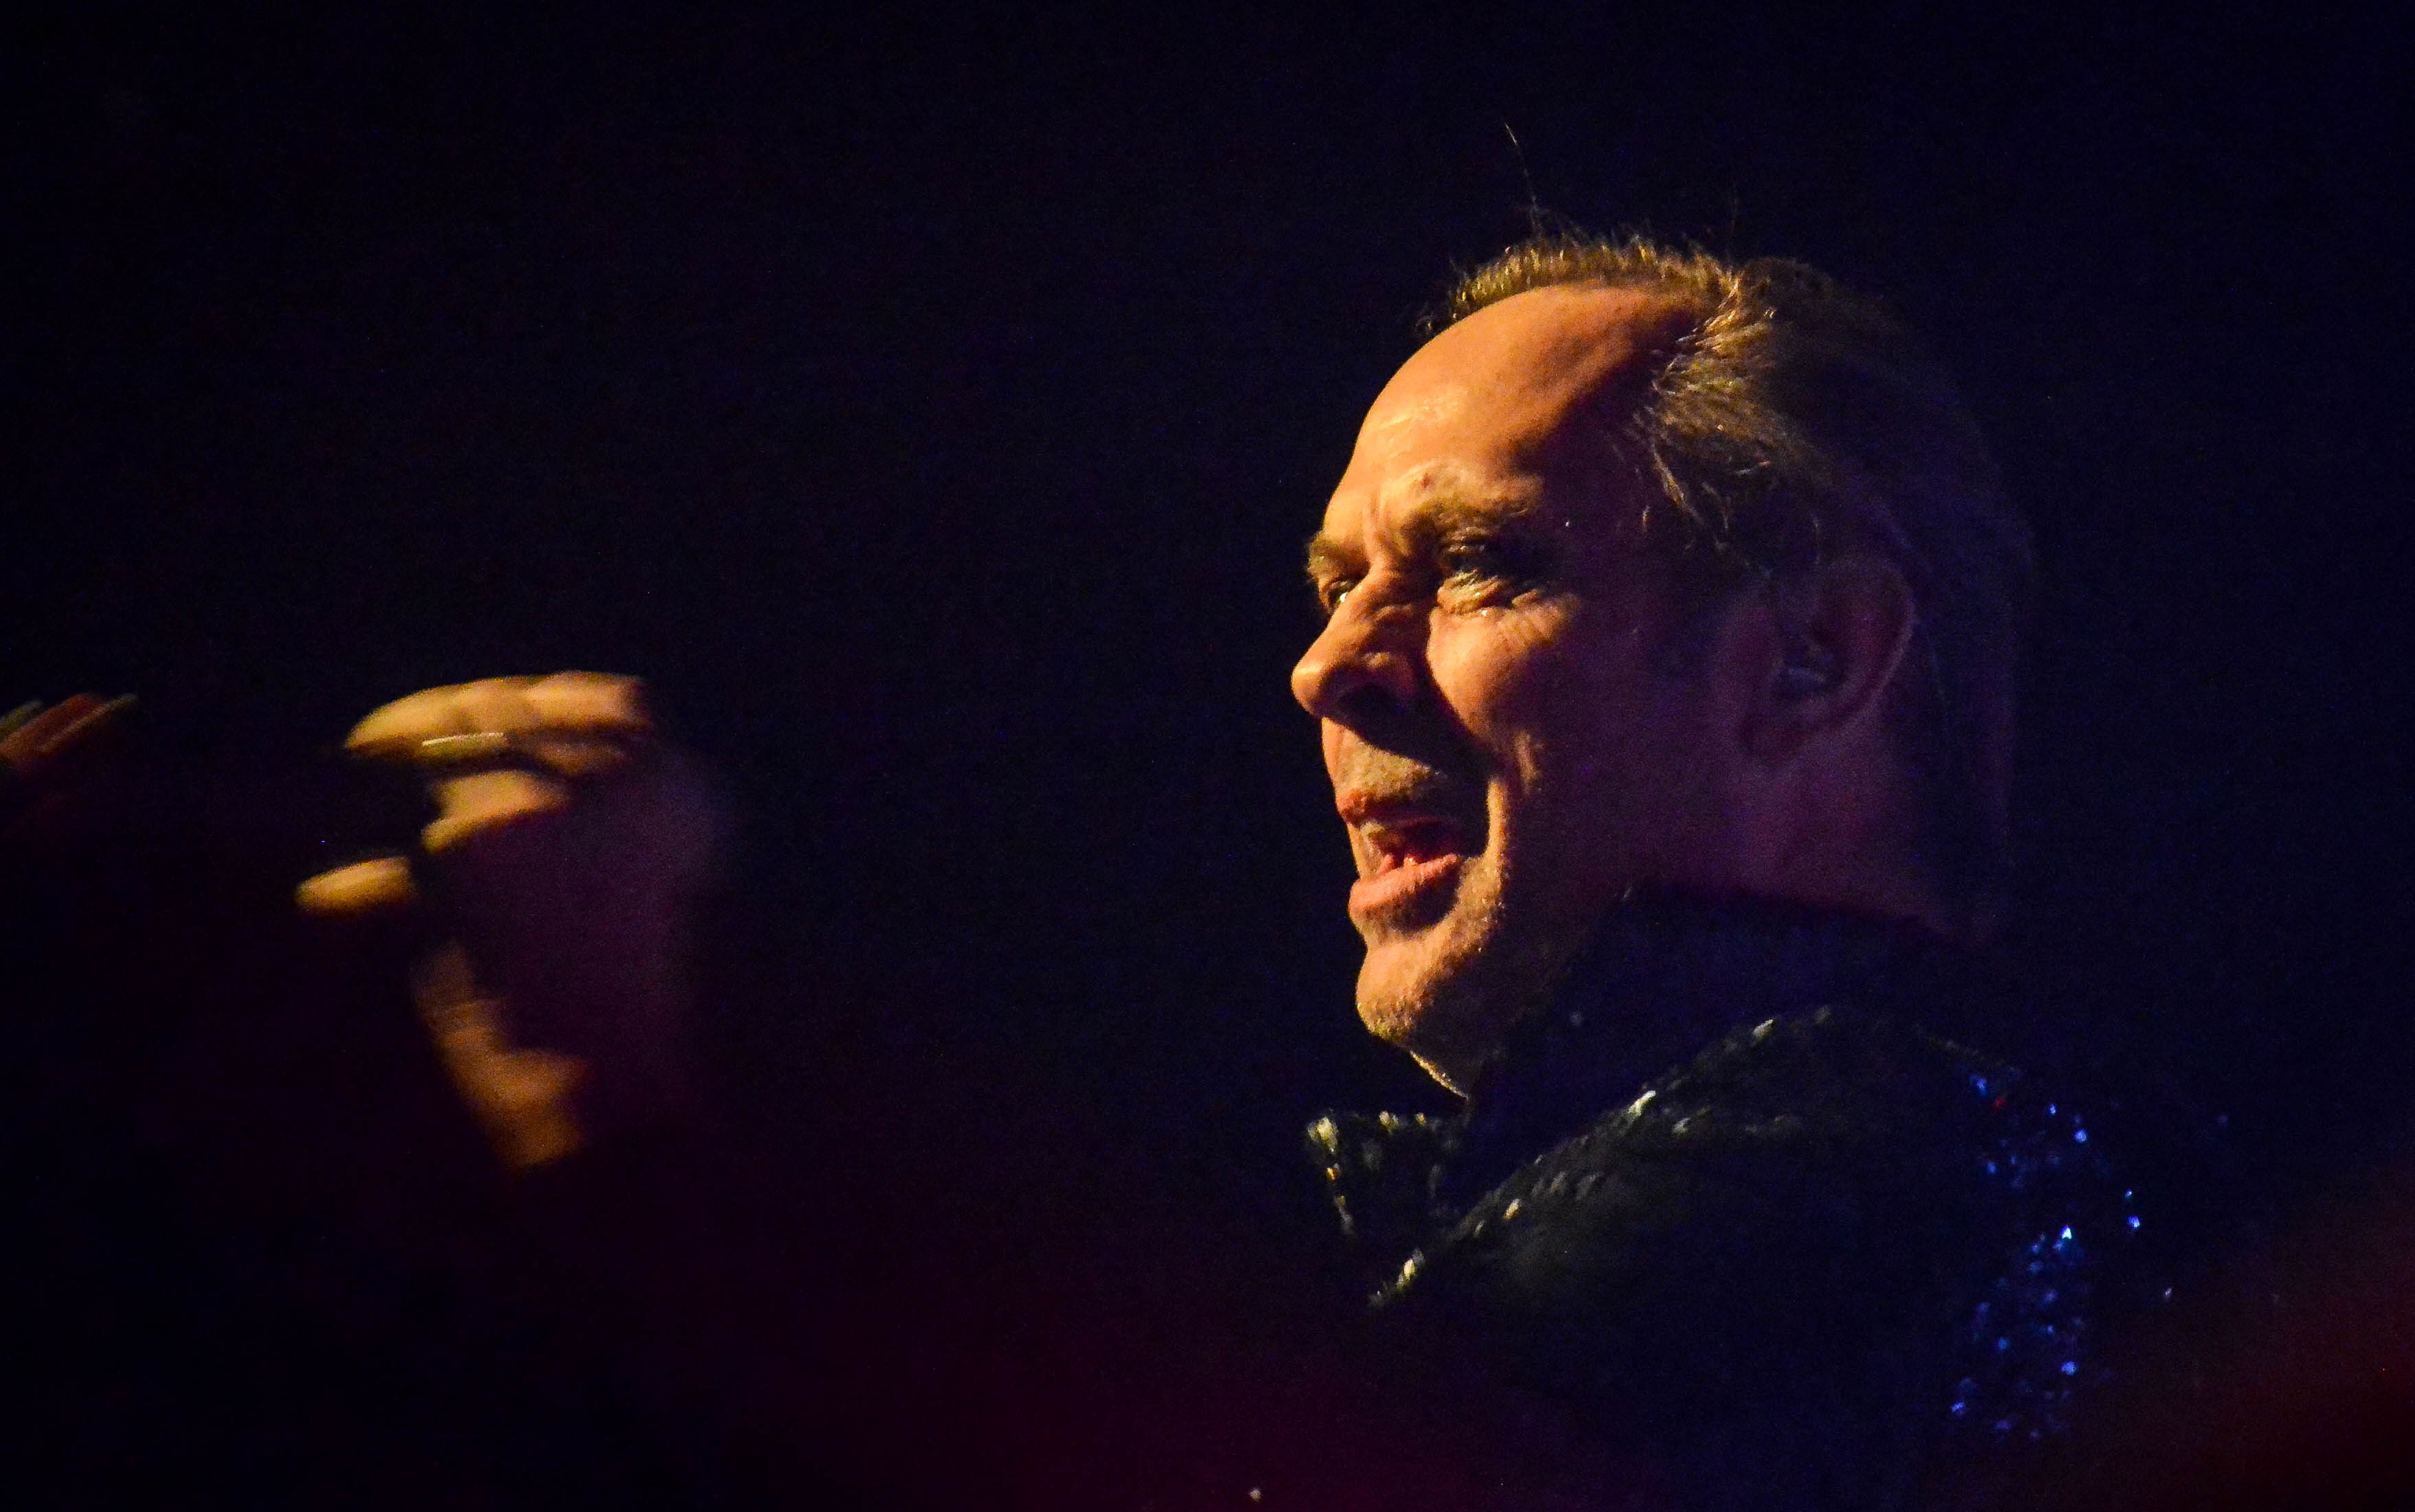 Peter Murphy David Bowie Tribute Show Night 2.